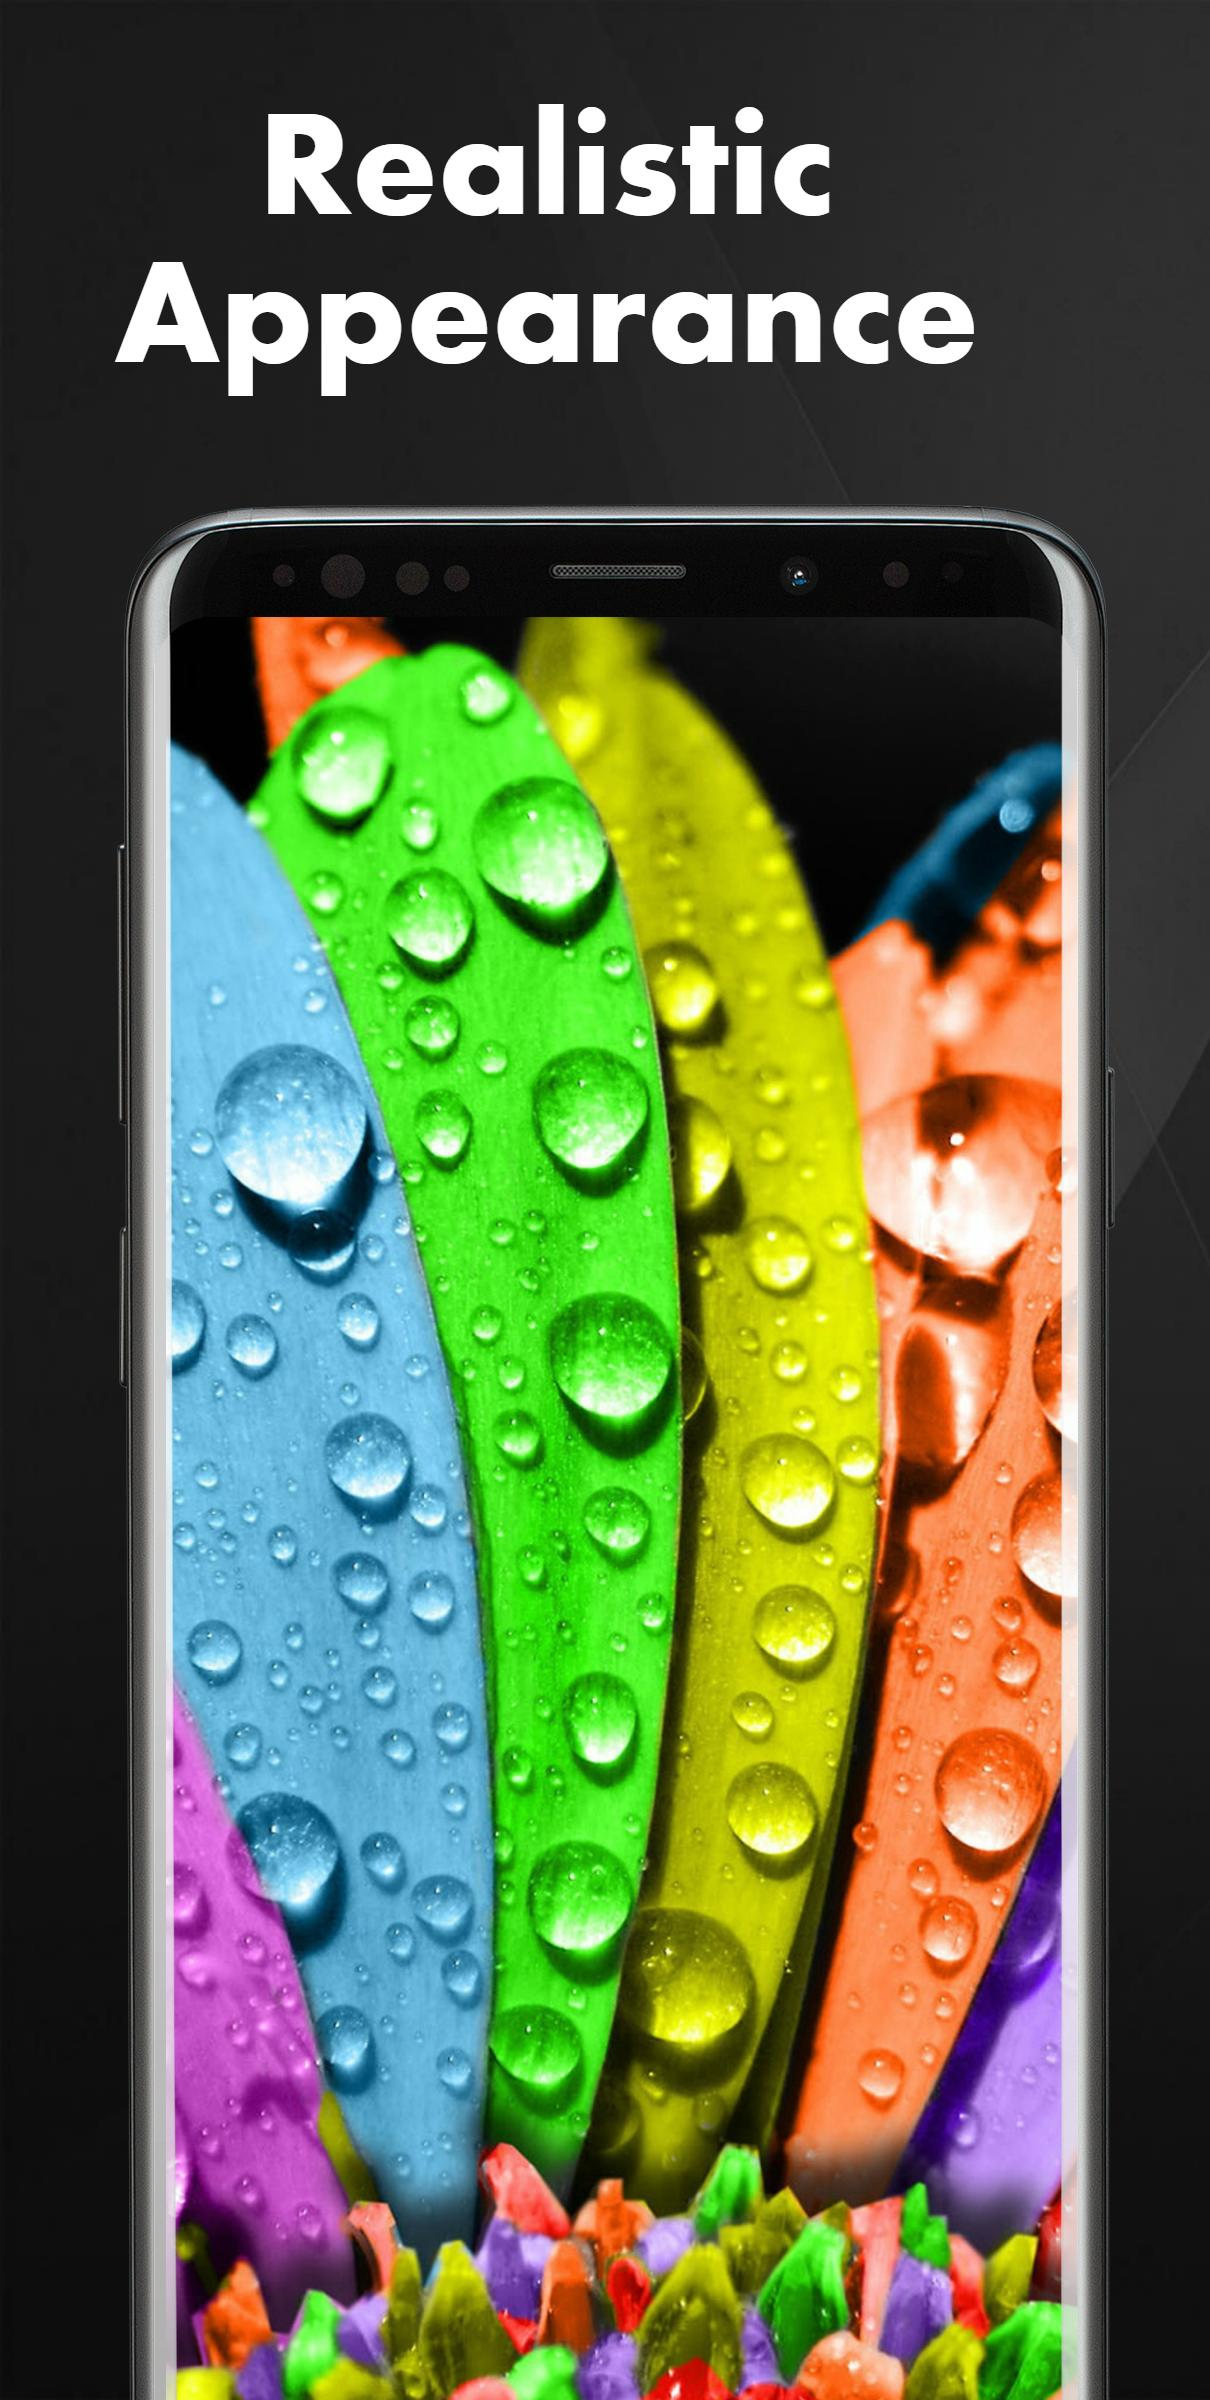 Colorful Wallpapers Hd 4k Vibrant Backgrounds For Android Apk Download